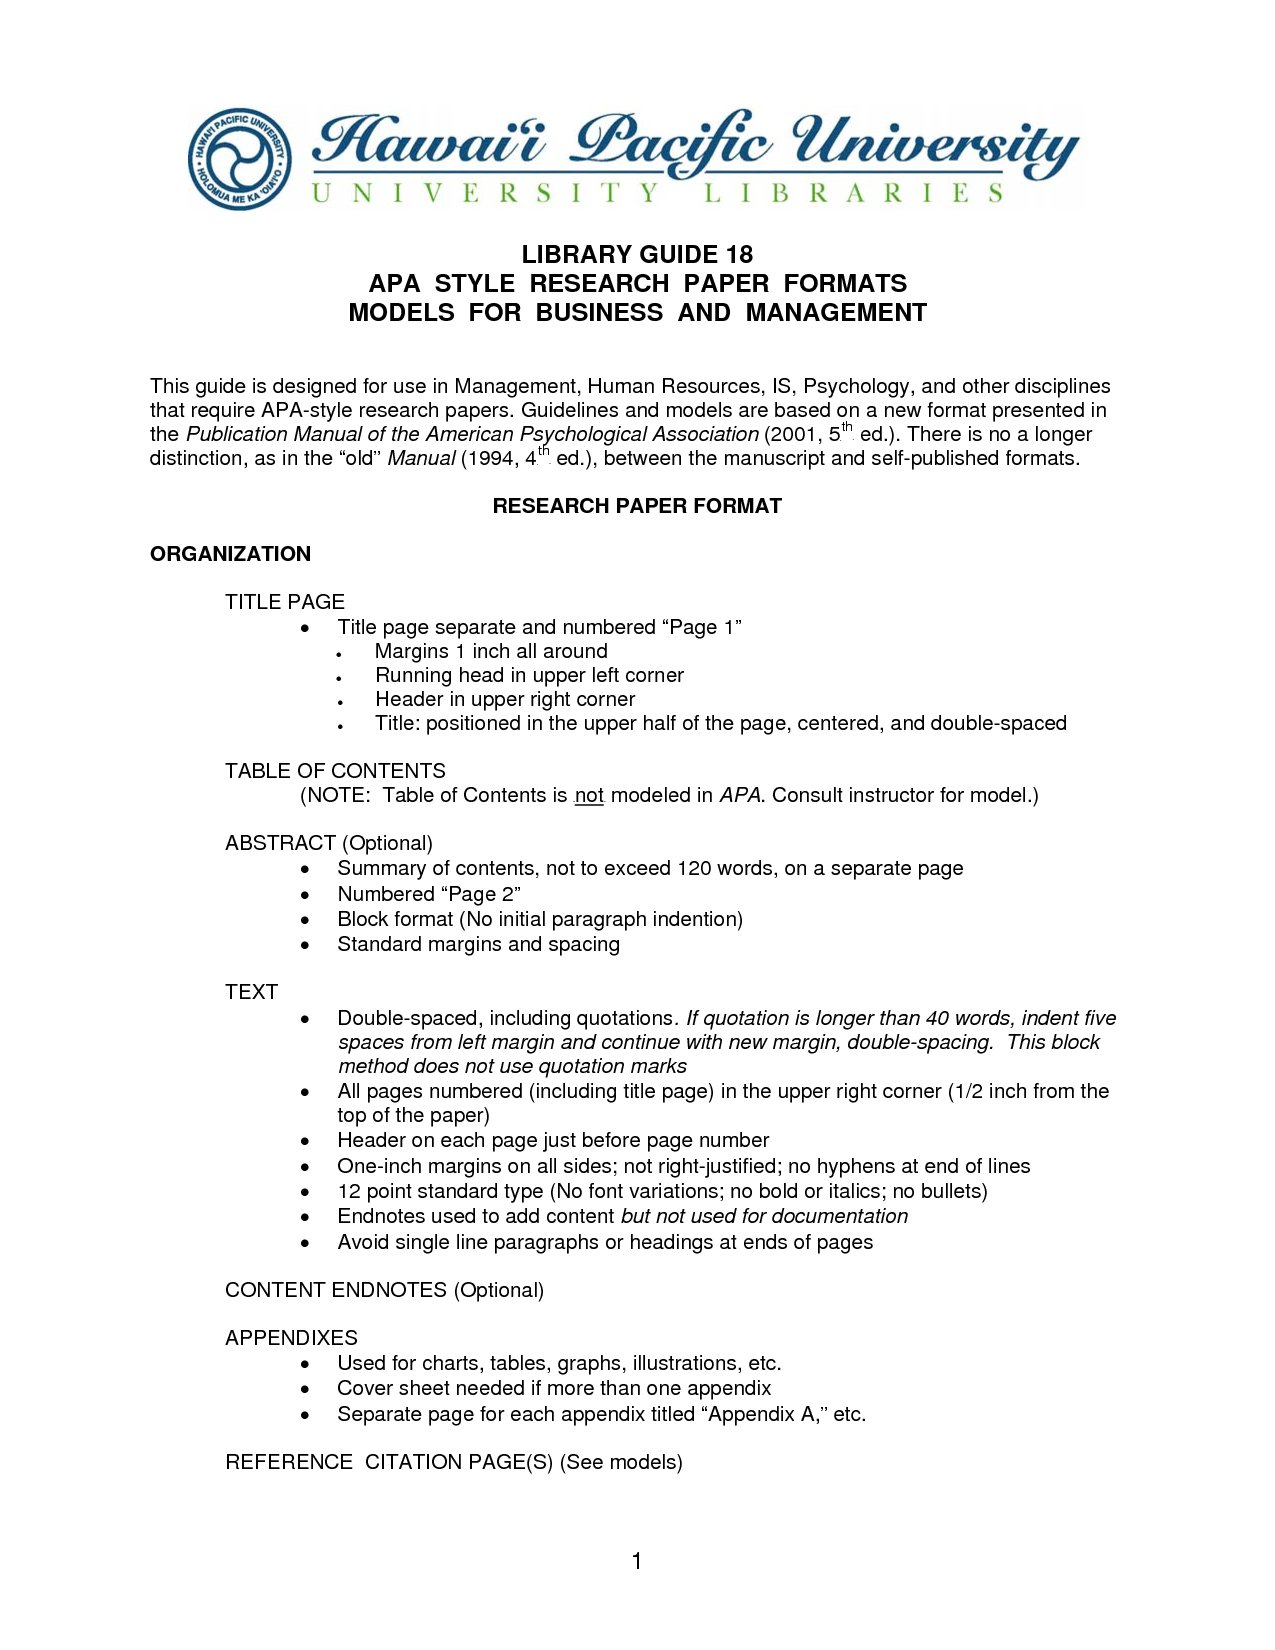 003 Format Research Paper Sample Statement Example Template Unique Apa 2017 Mla Introduction Full